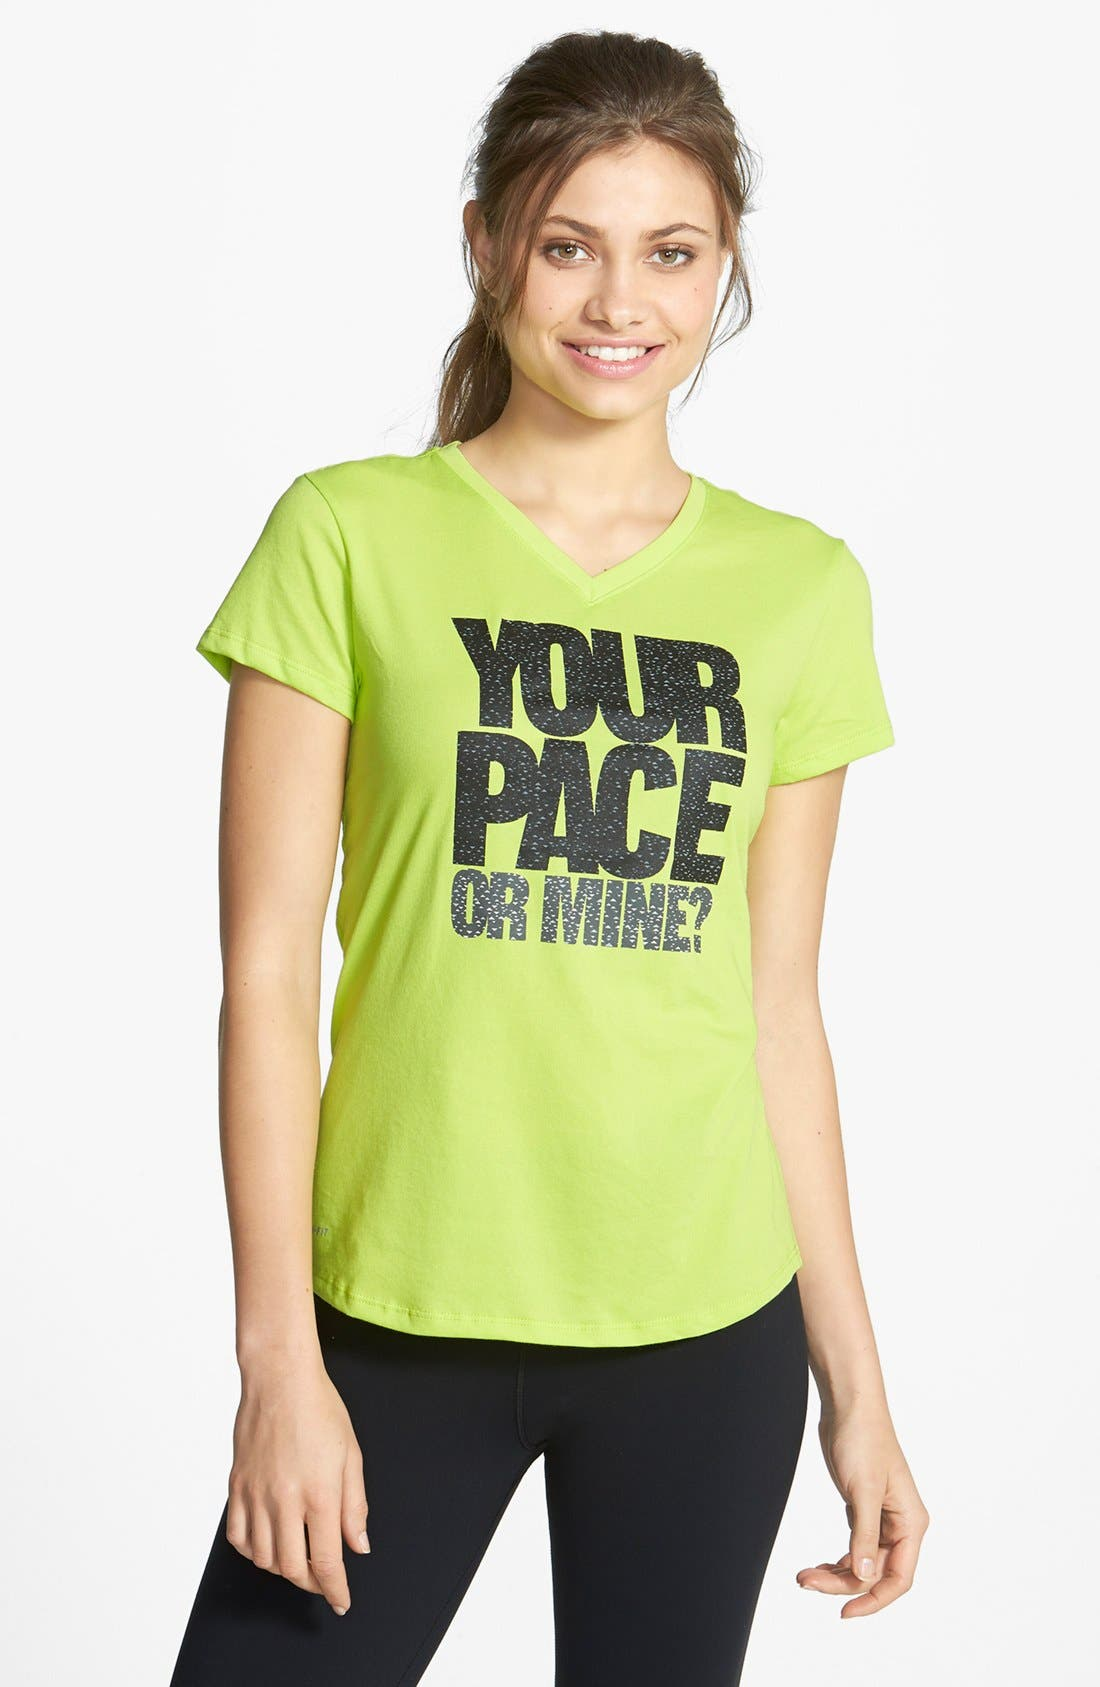 Main Image - Nike 'Run - Your Pace or Mine?' Dri-FIT Tee